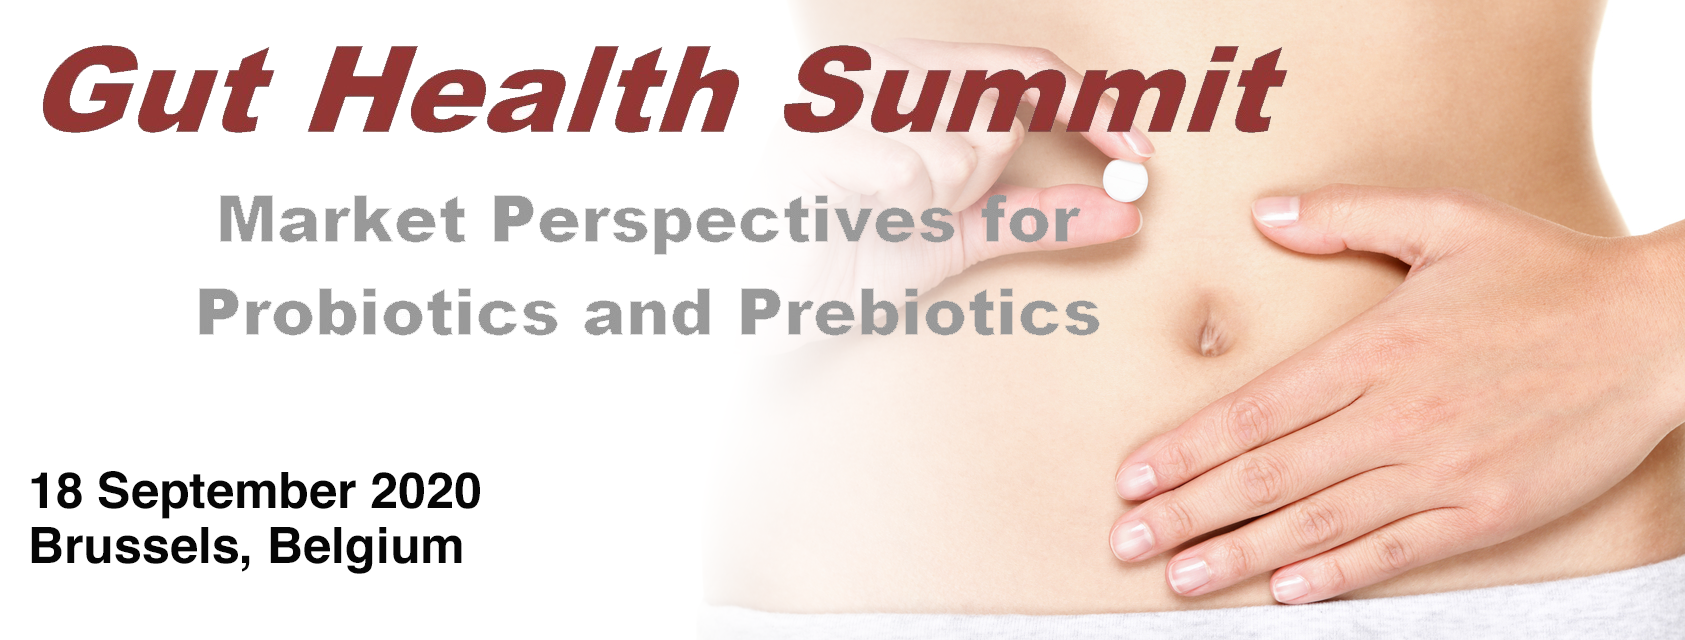 Gut_health_Summit_september